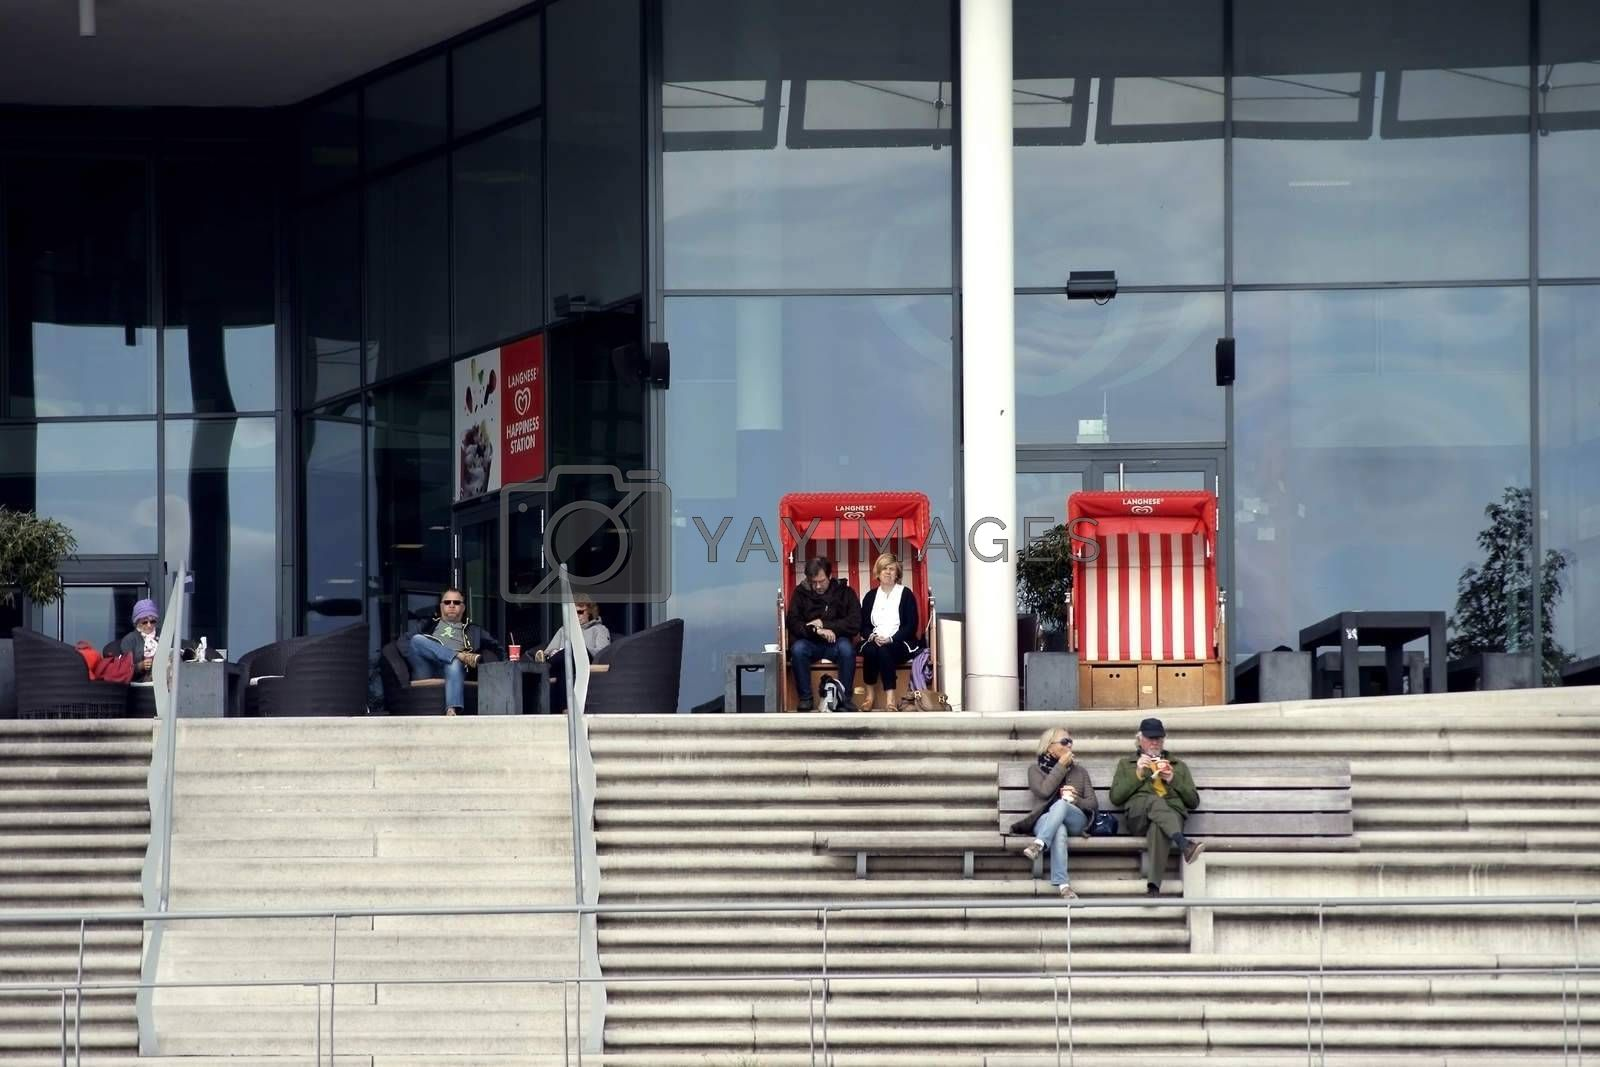 Hamburg, Germany - September 22, 2014: Visitors of restaurants and ice cream parlors in the Harbor city Hamburg sit in beach chairs and at tables on a terrace in good weather on September 22, 2014 in Hamburg.